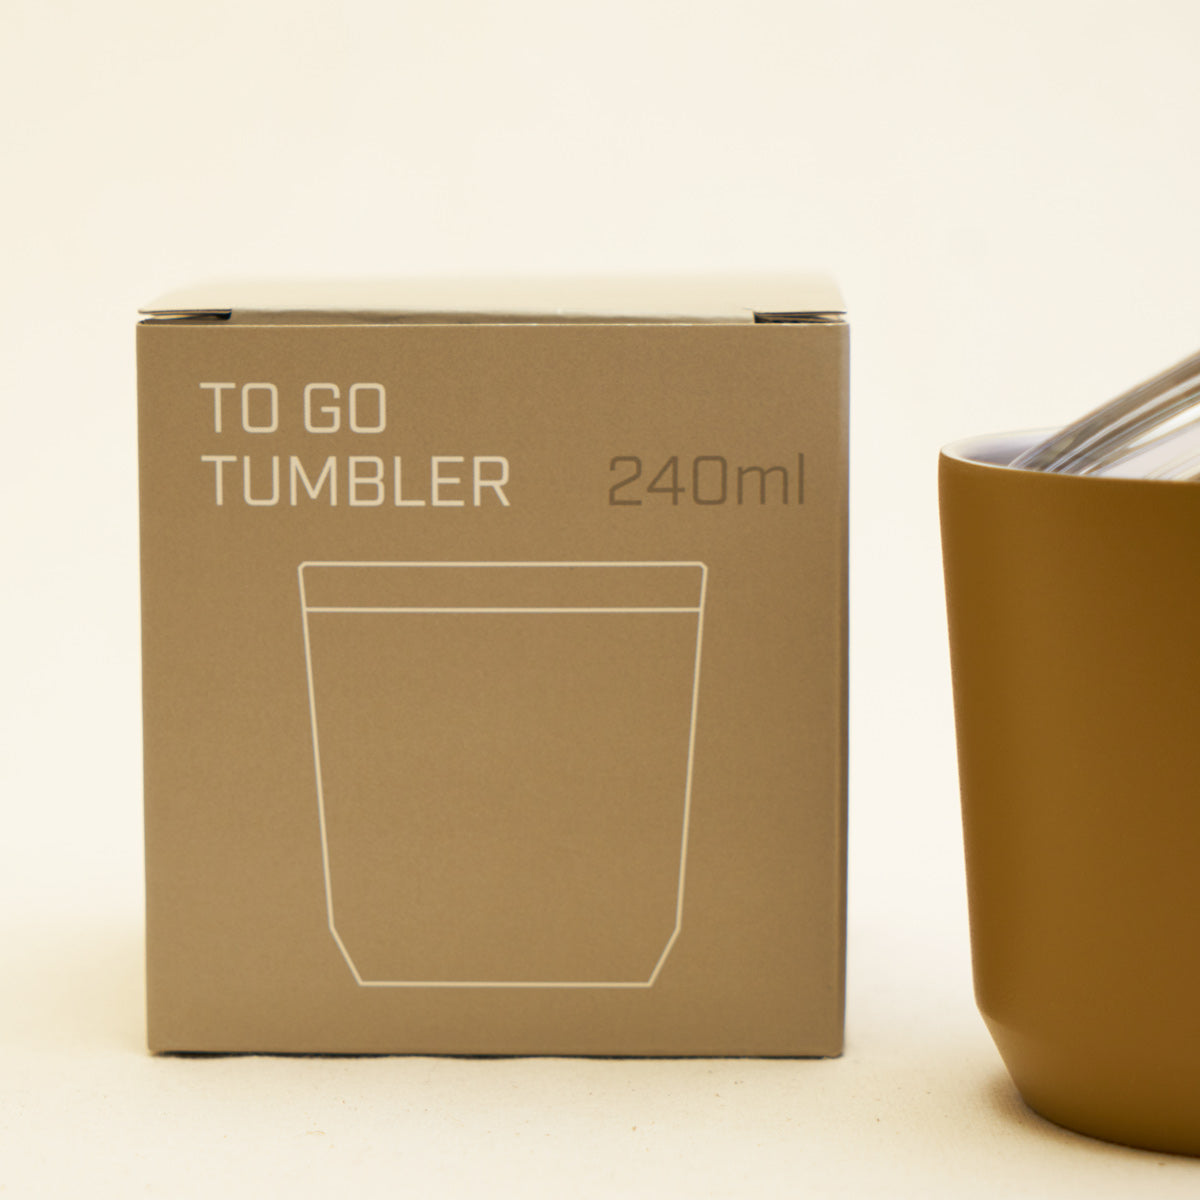 Kinto - To Go Tumbler 240ml